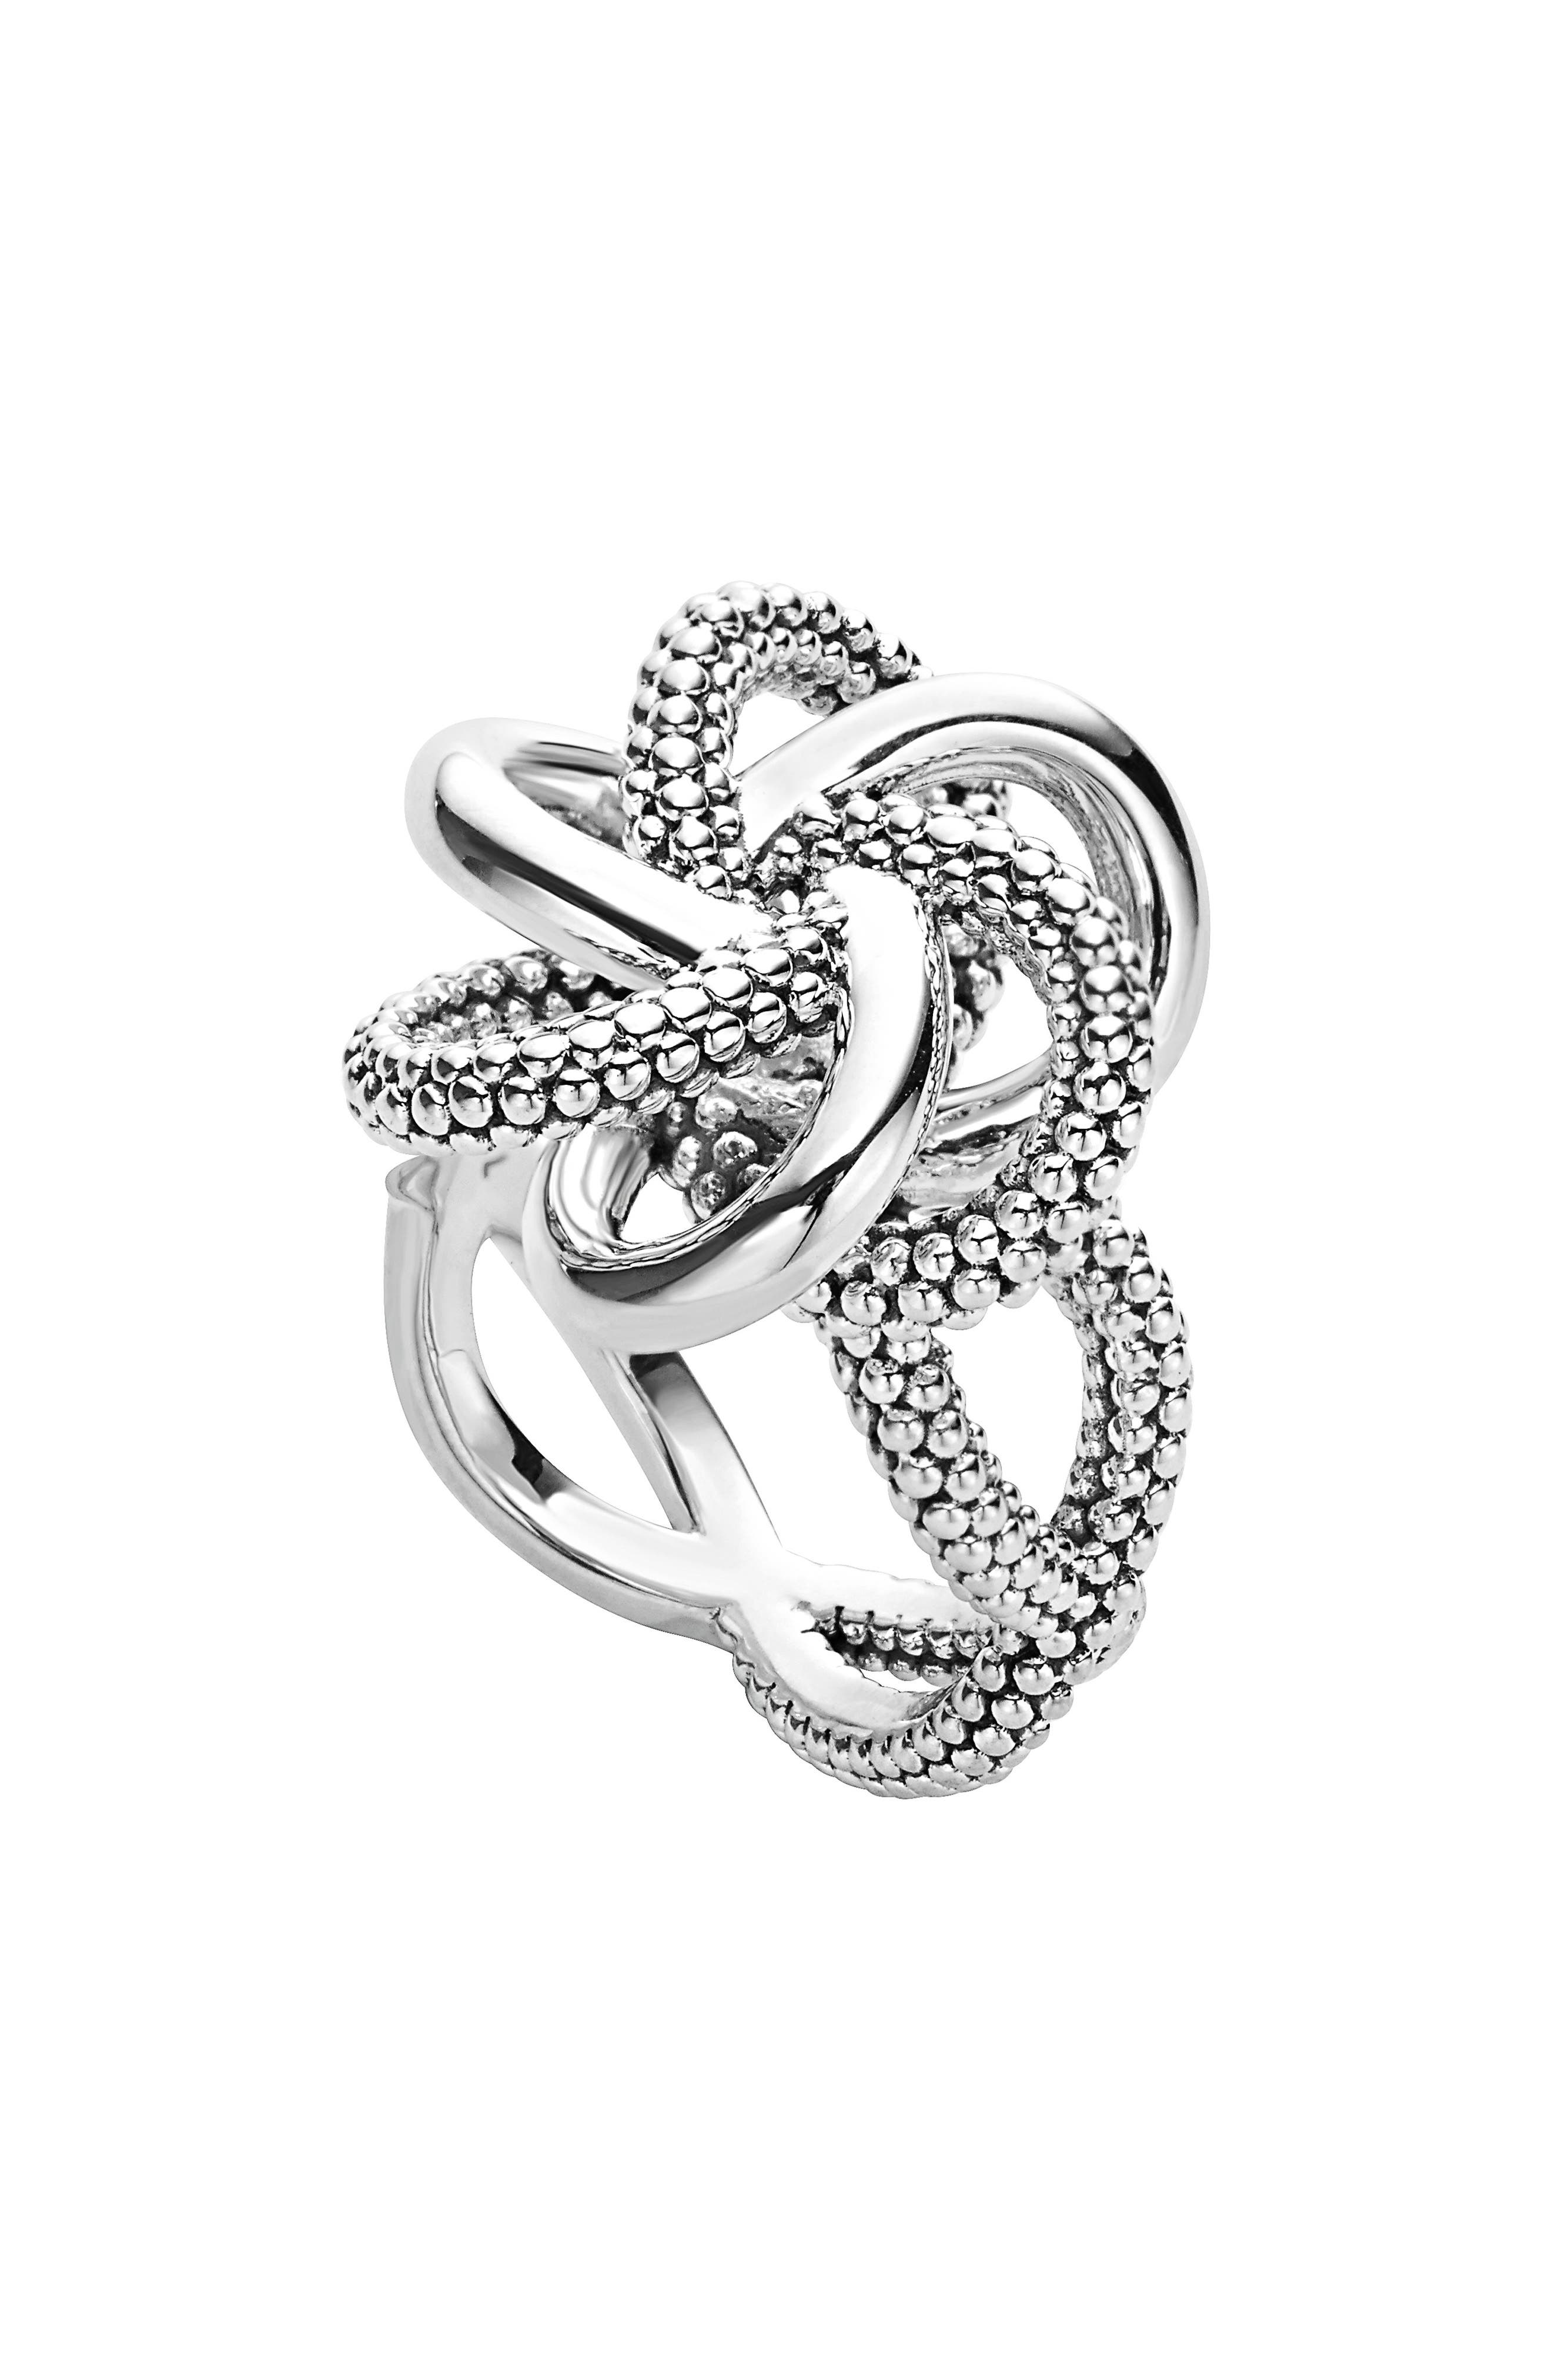 'Love Knot' Twist Ring,                             Main thumbnail 1, color,                             Sterling Silver